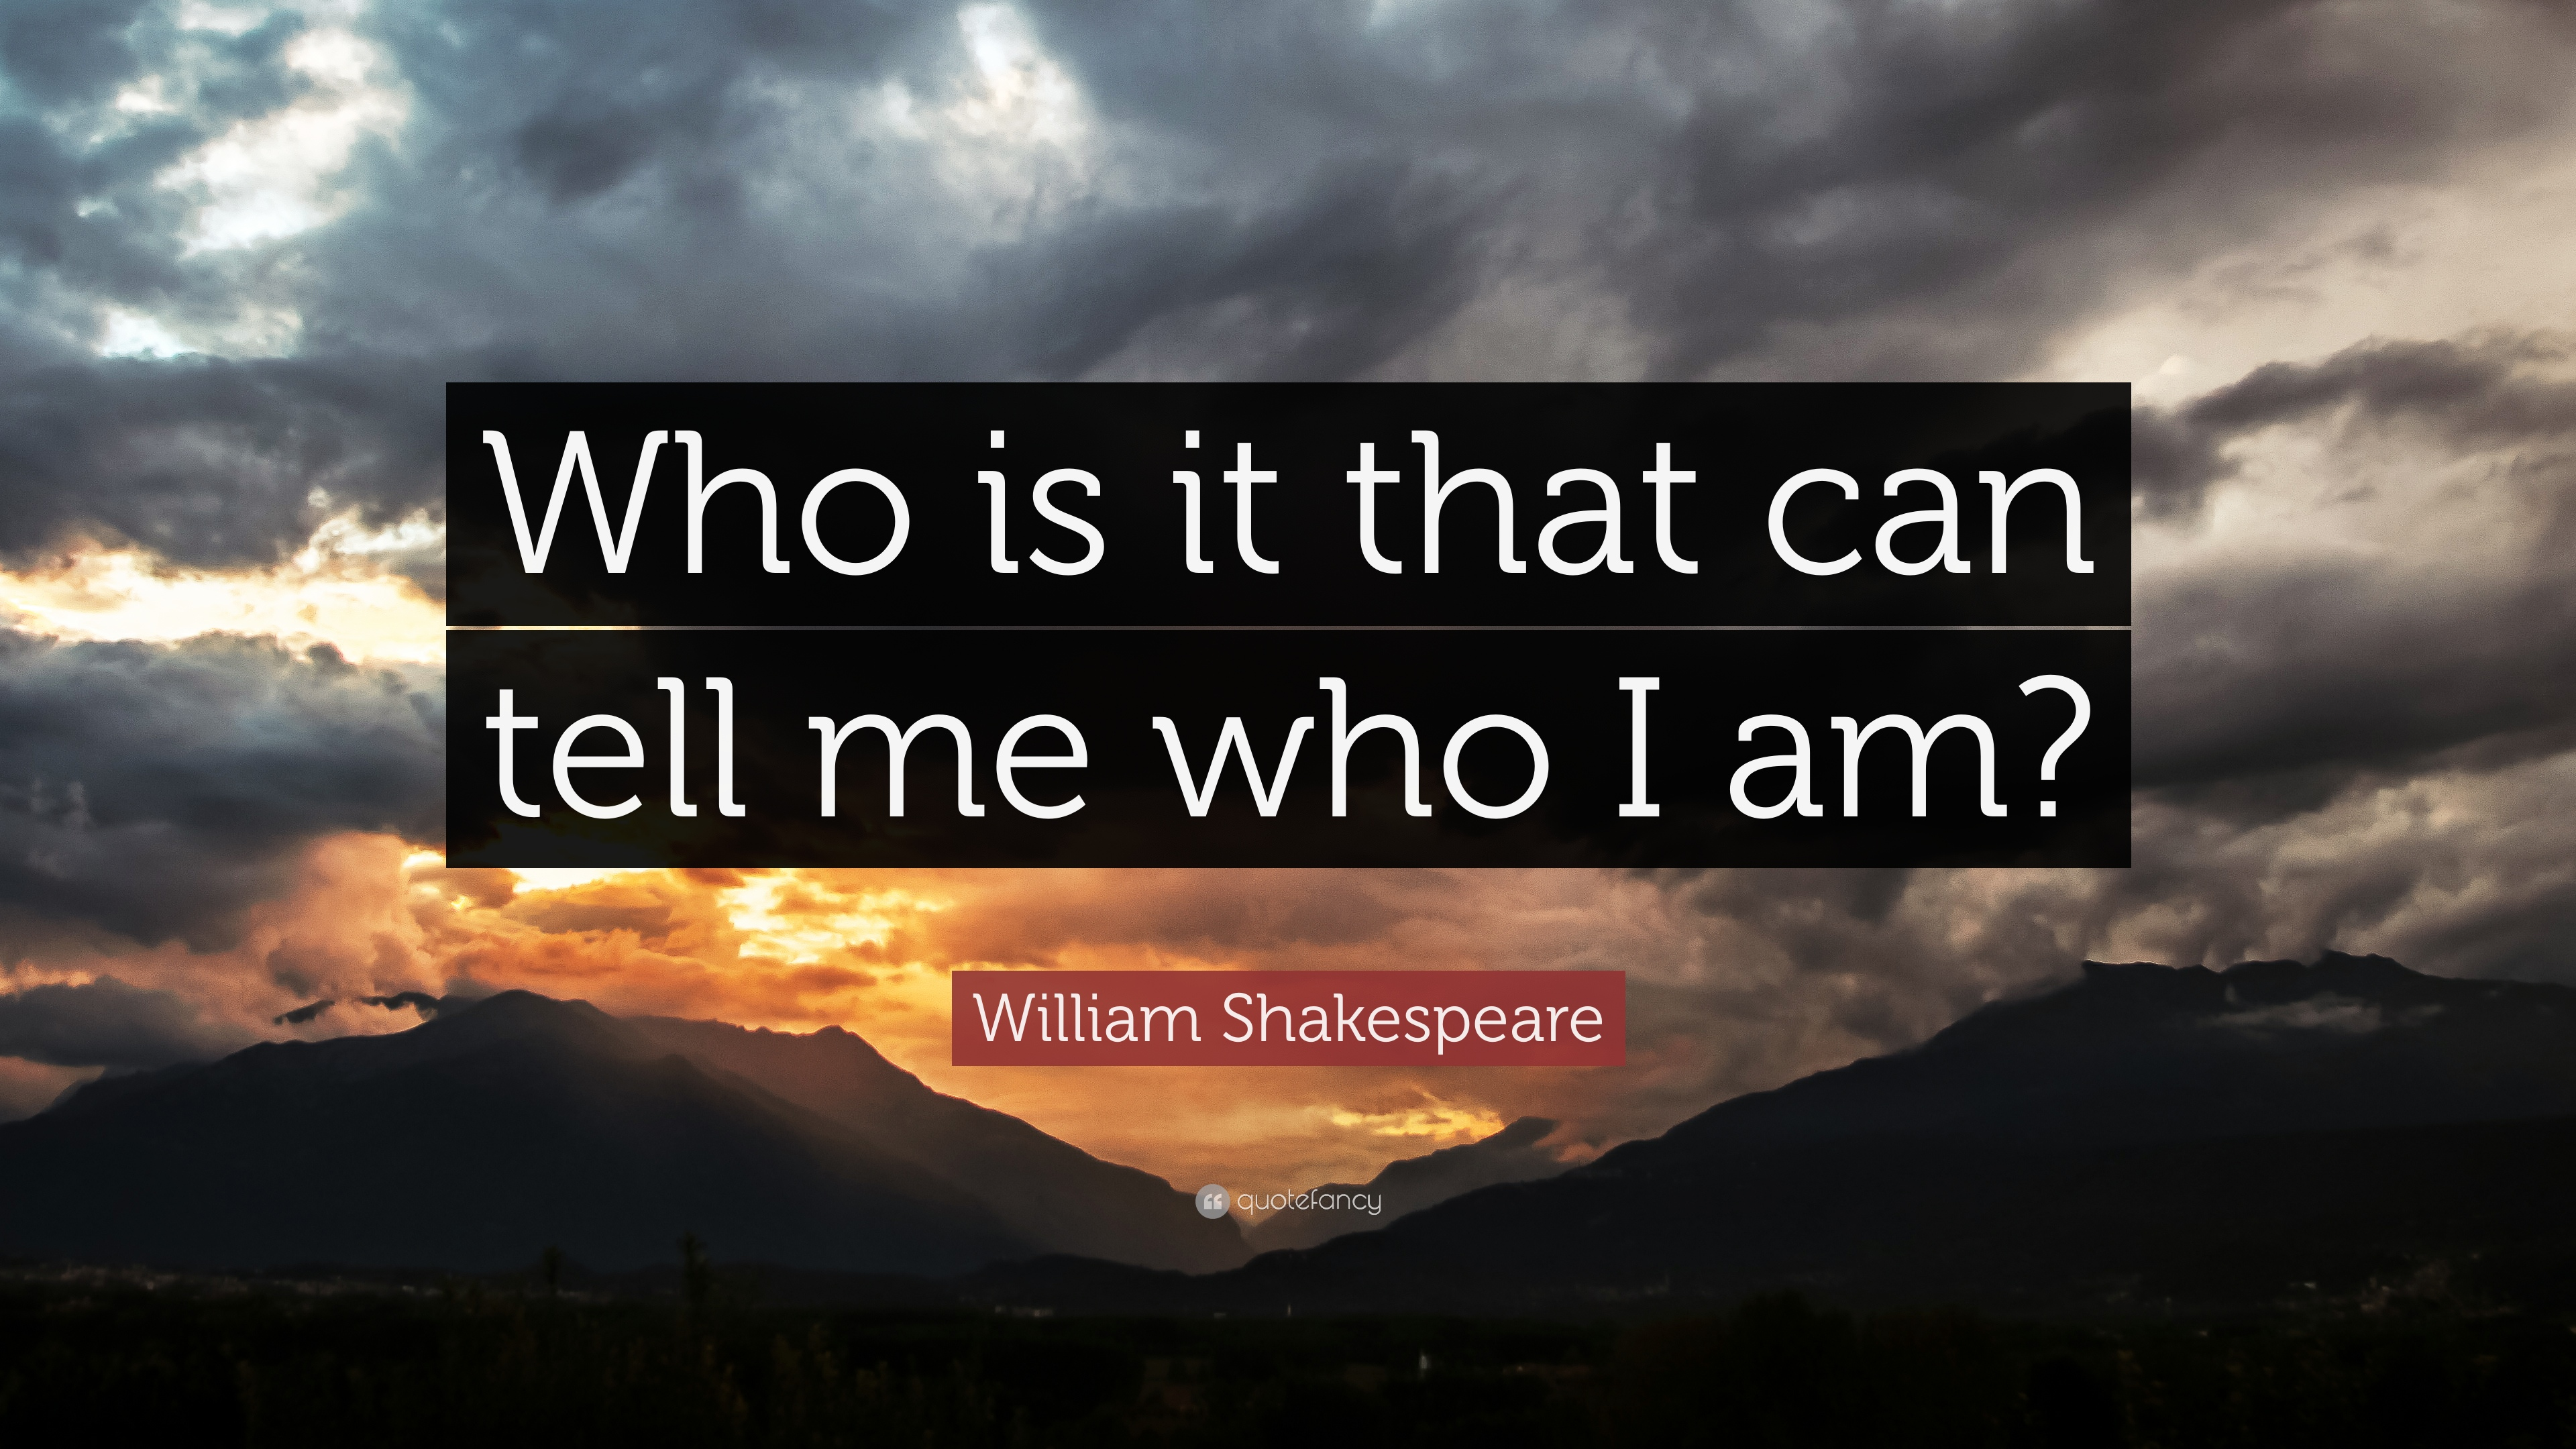 Shakespeare Wallpapers With Quotes William Shakespeare Quote Who Is It That Can Tell Me Who